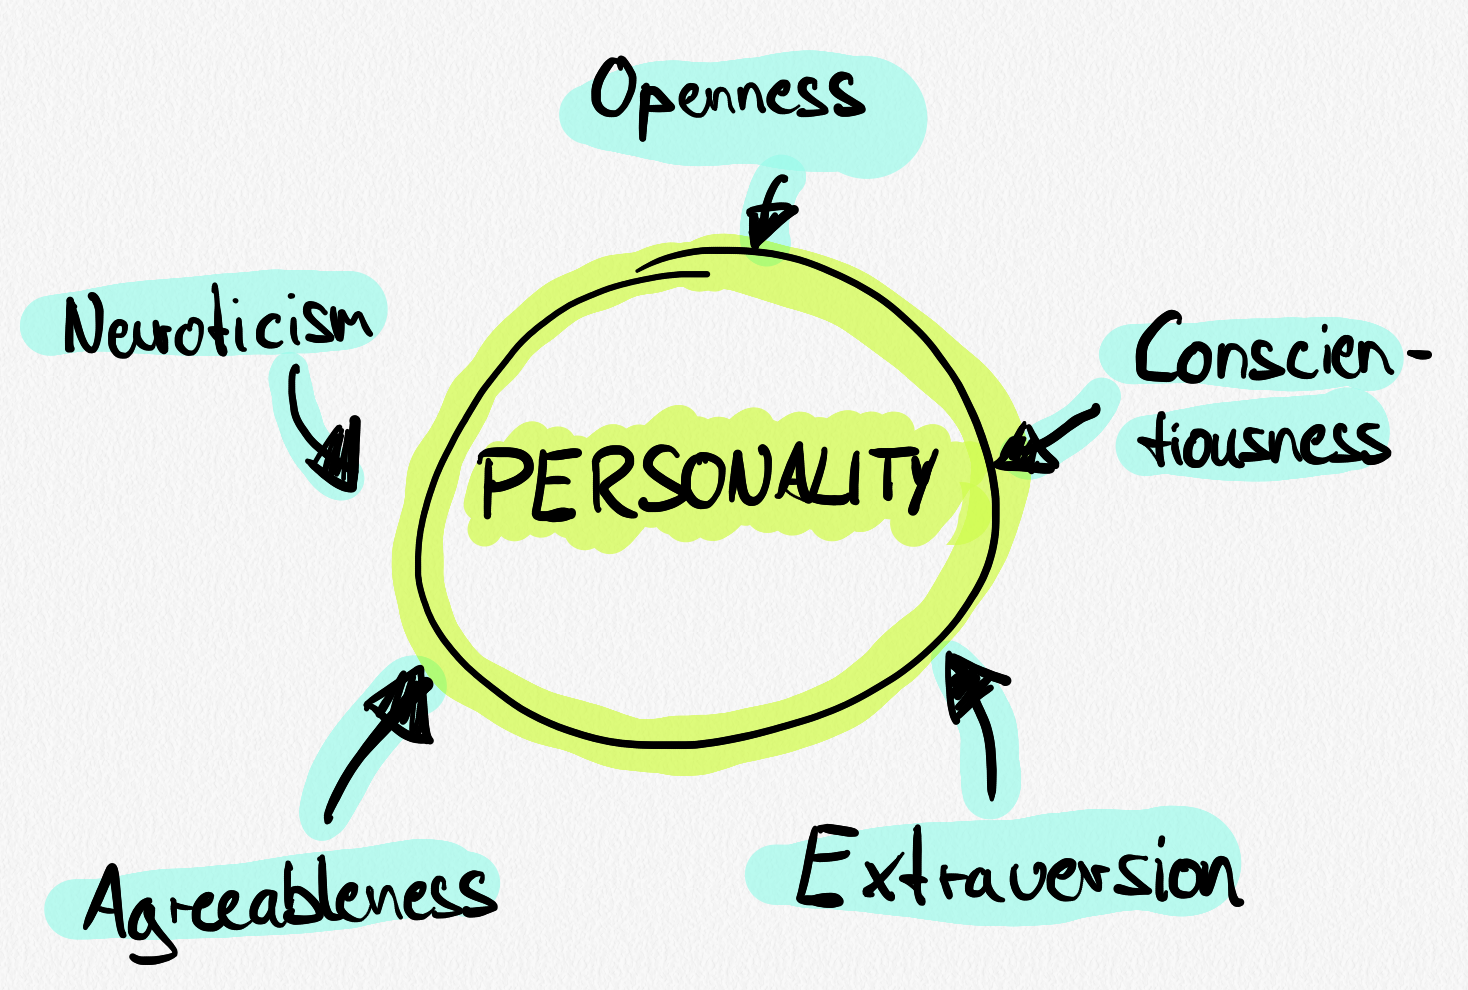 A sketch of the big five personalities model